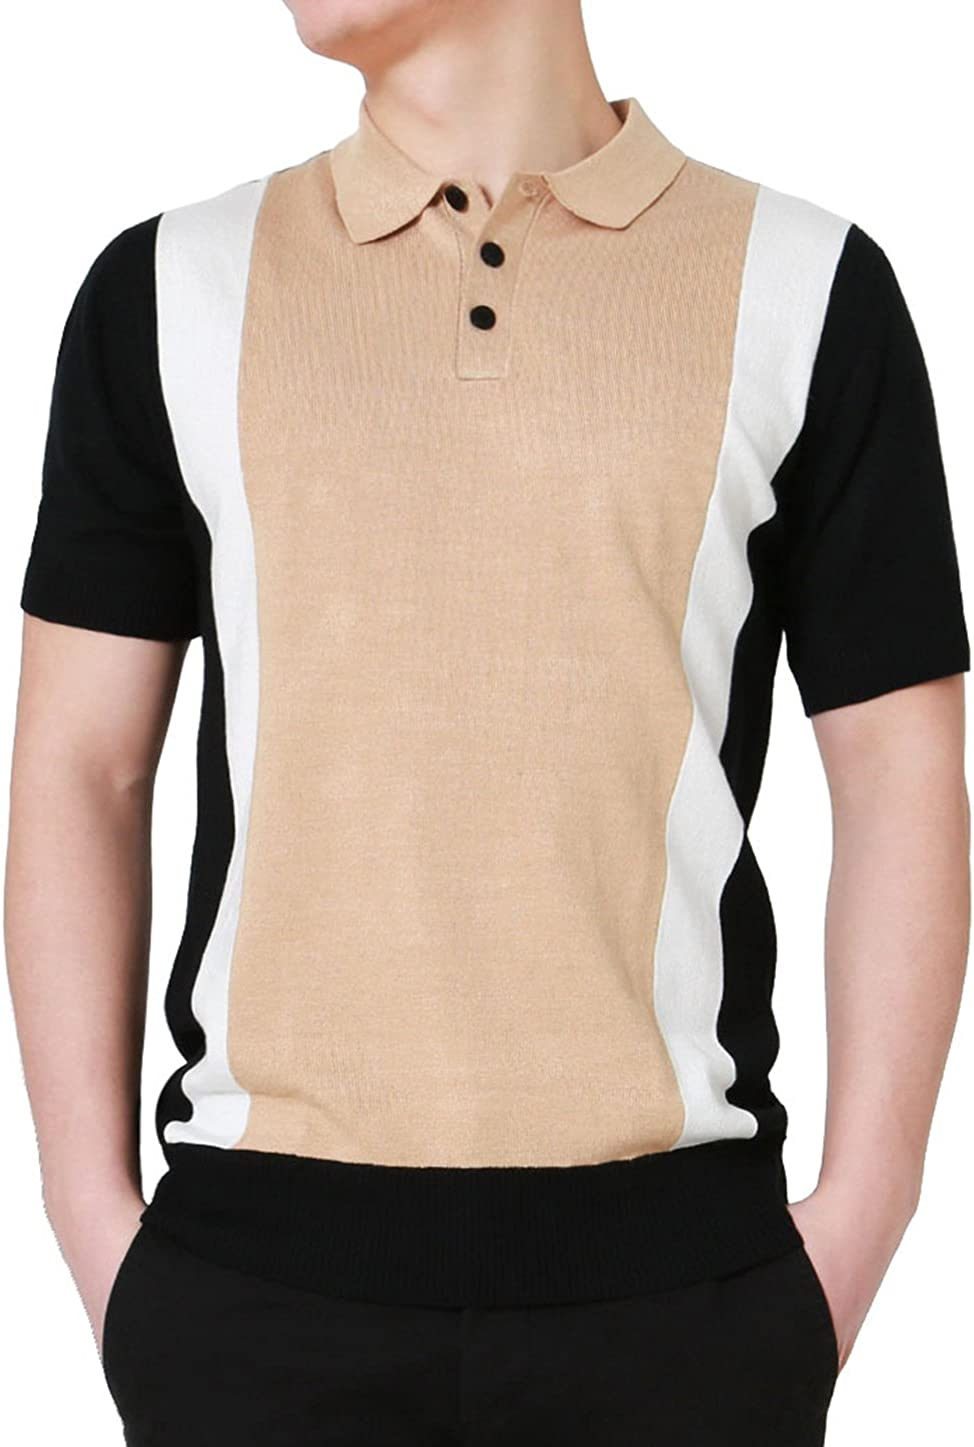 God is Good All The Time Mens Regular-Fit Cotton Polo Shirt Short Sleeve